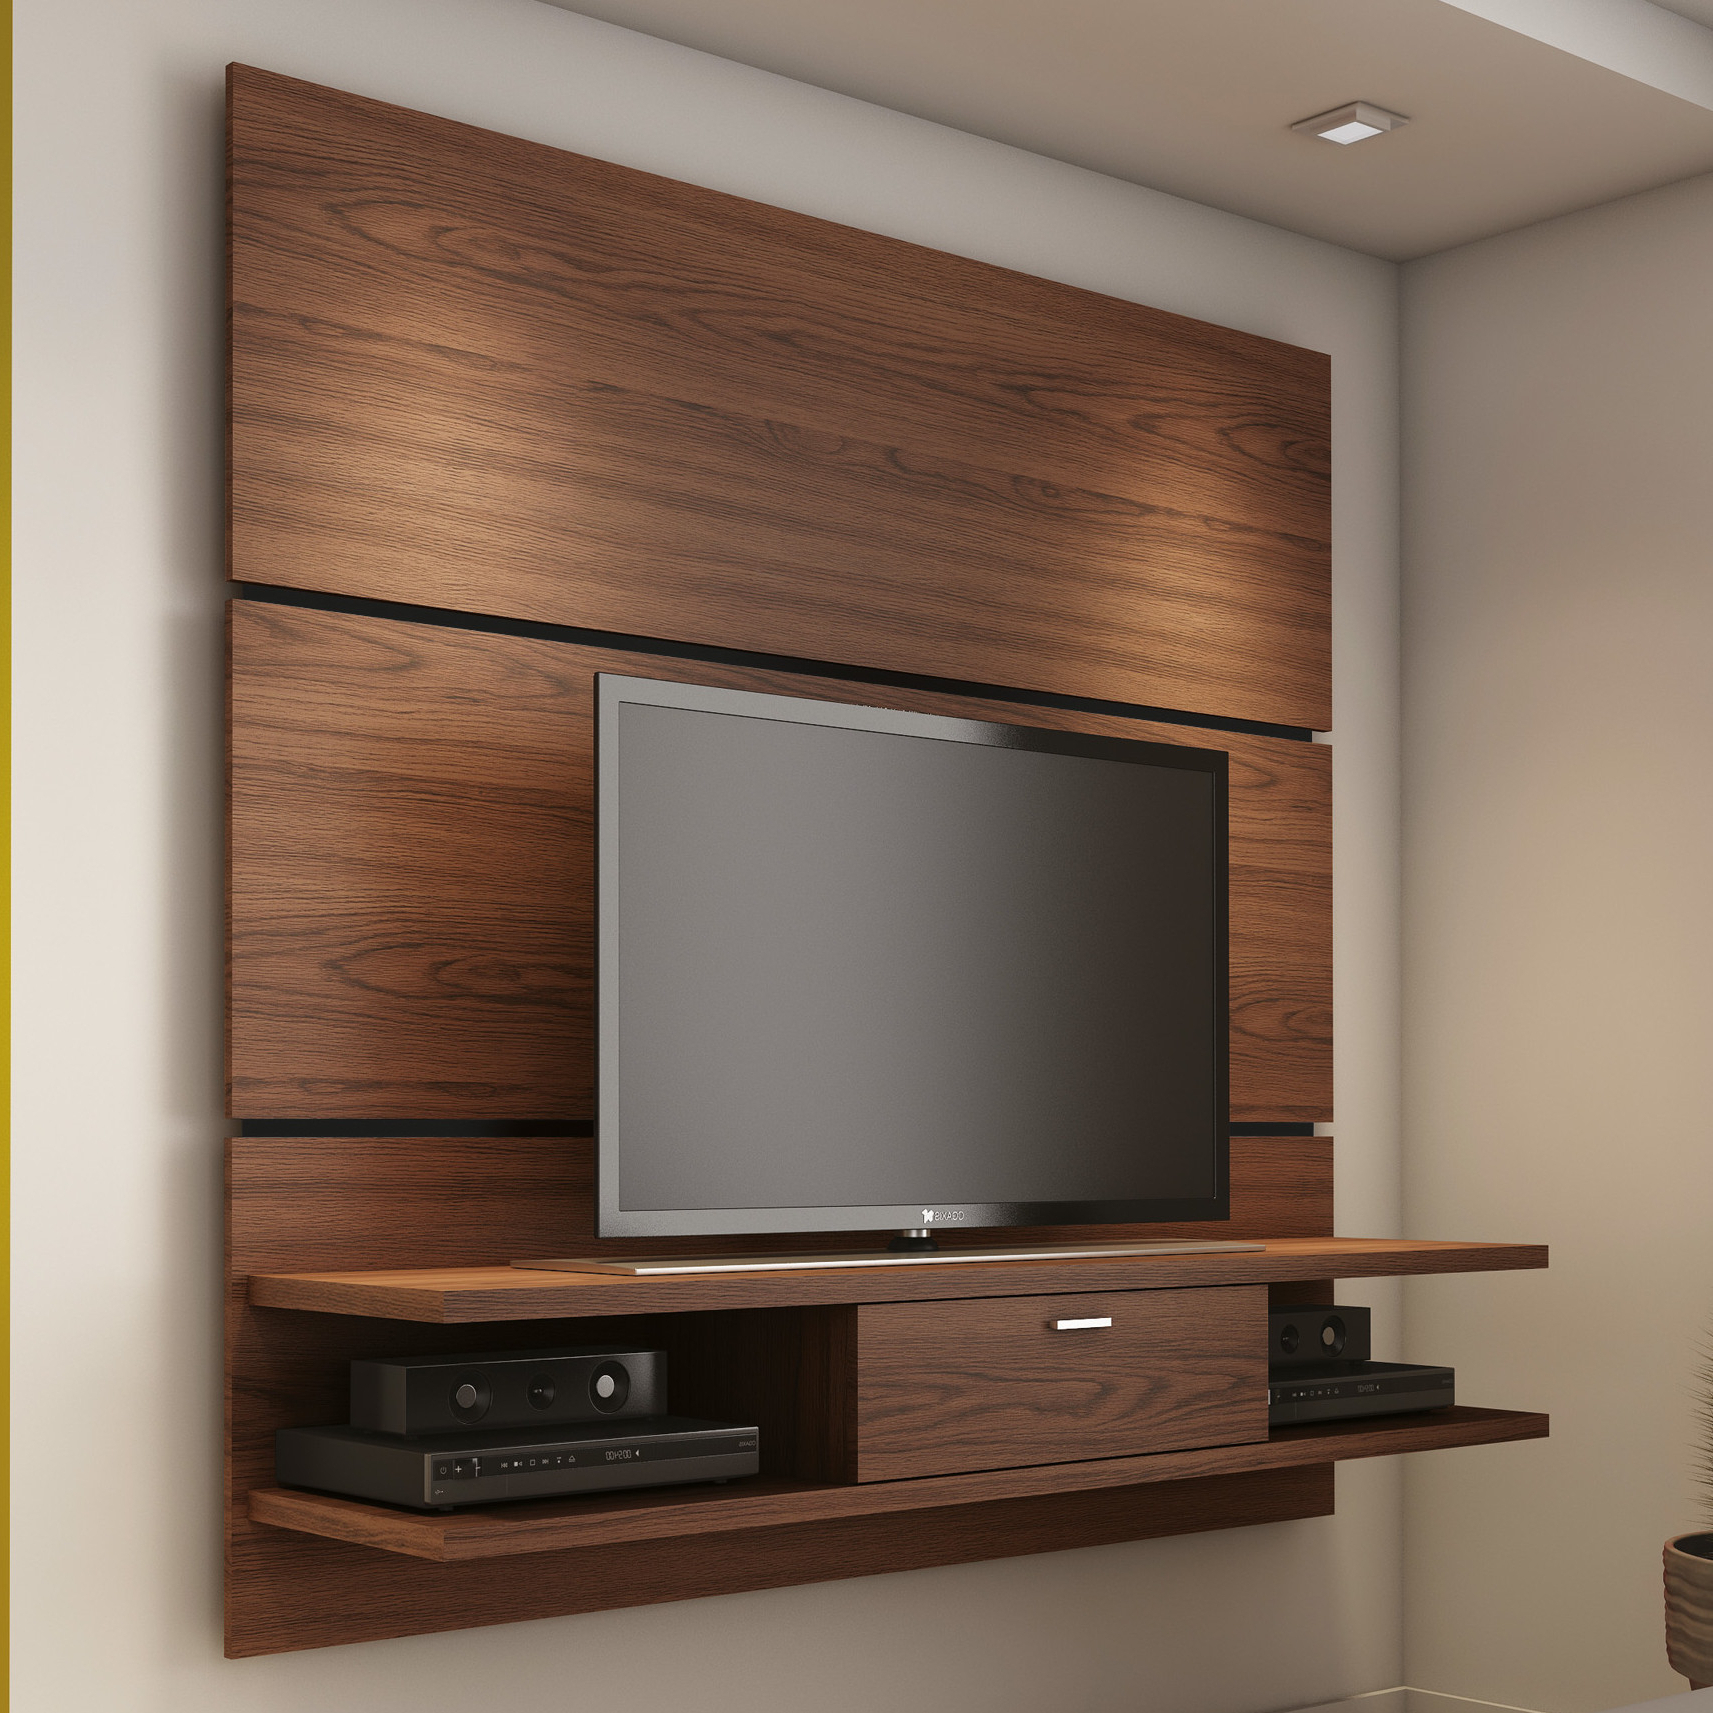 Widely Used Wooden Tv Cabinets Within Tv 185 Wall Tv Cabinet Crafted In Wood Details (View 6 of 20)